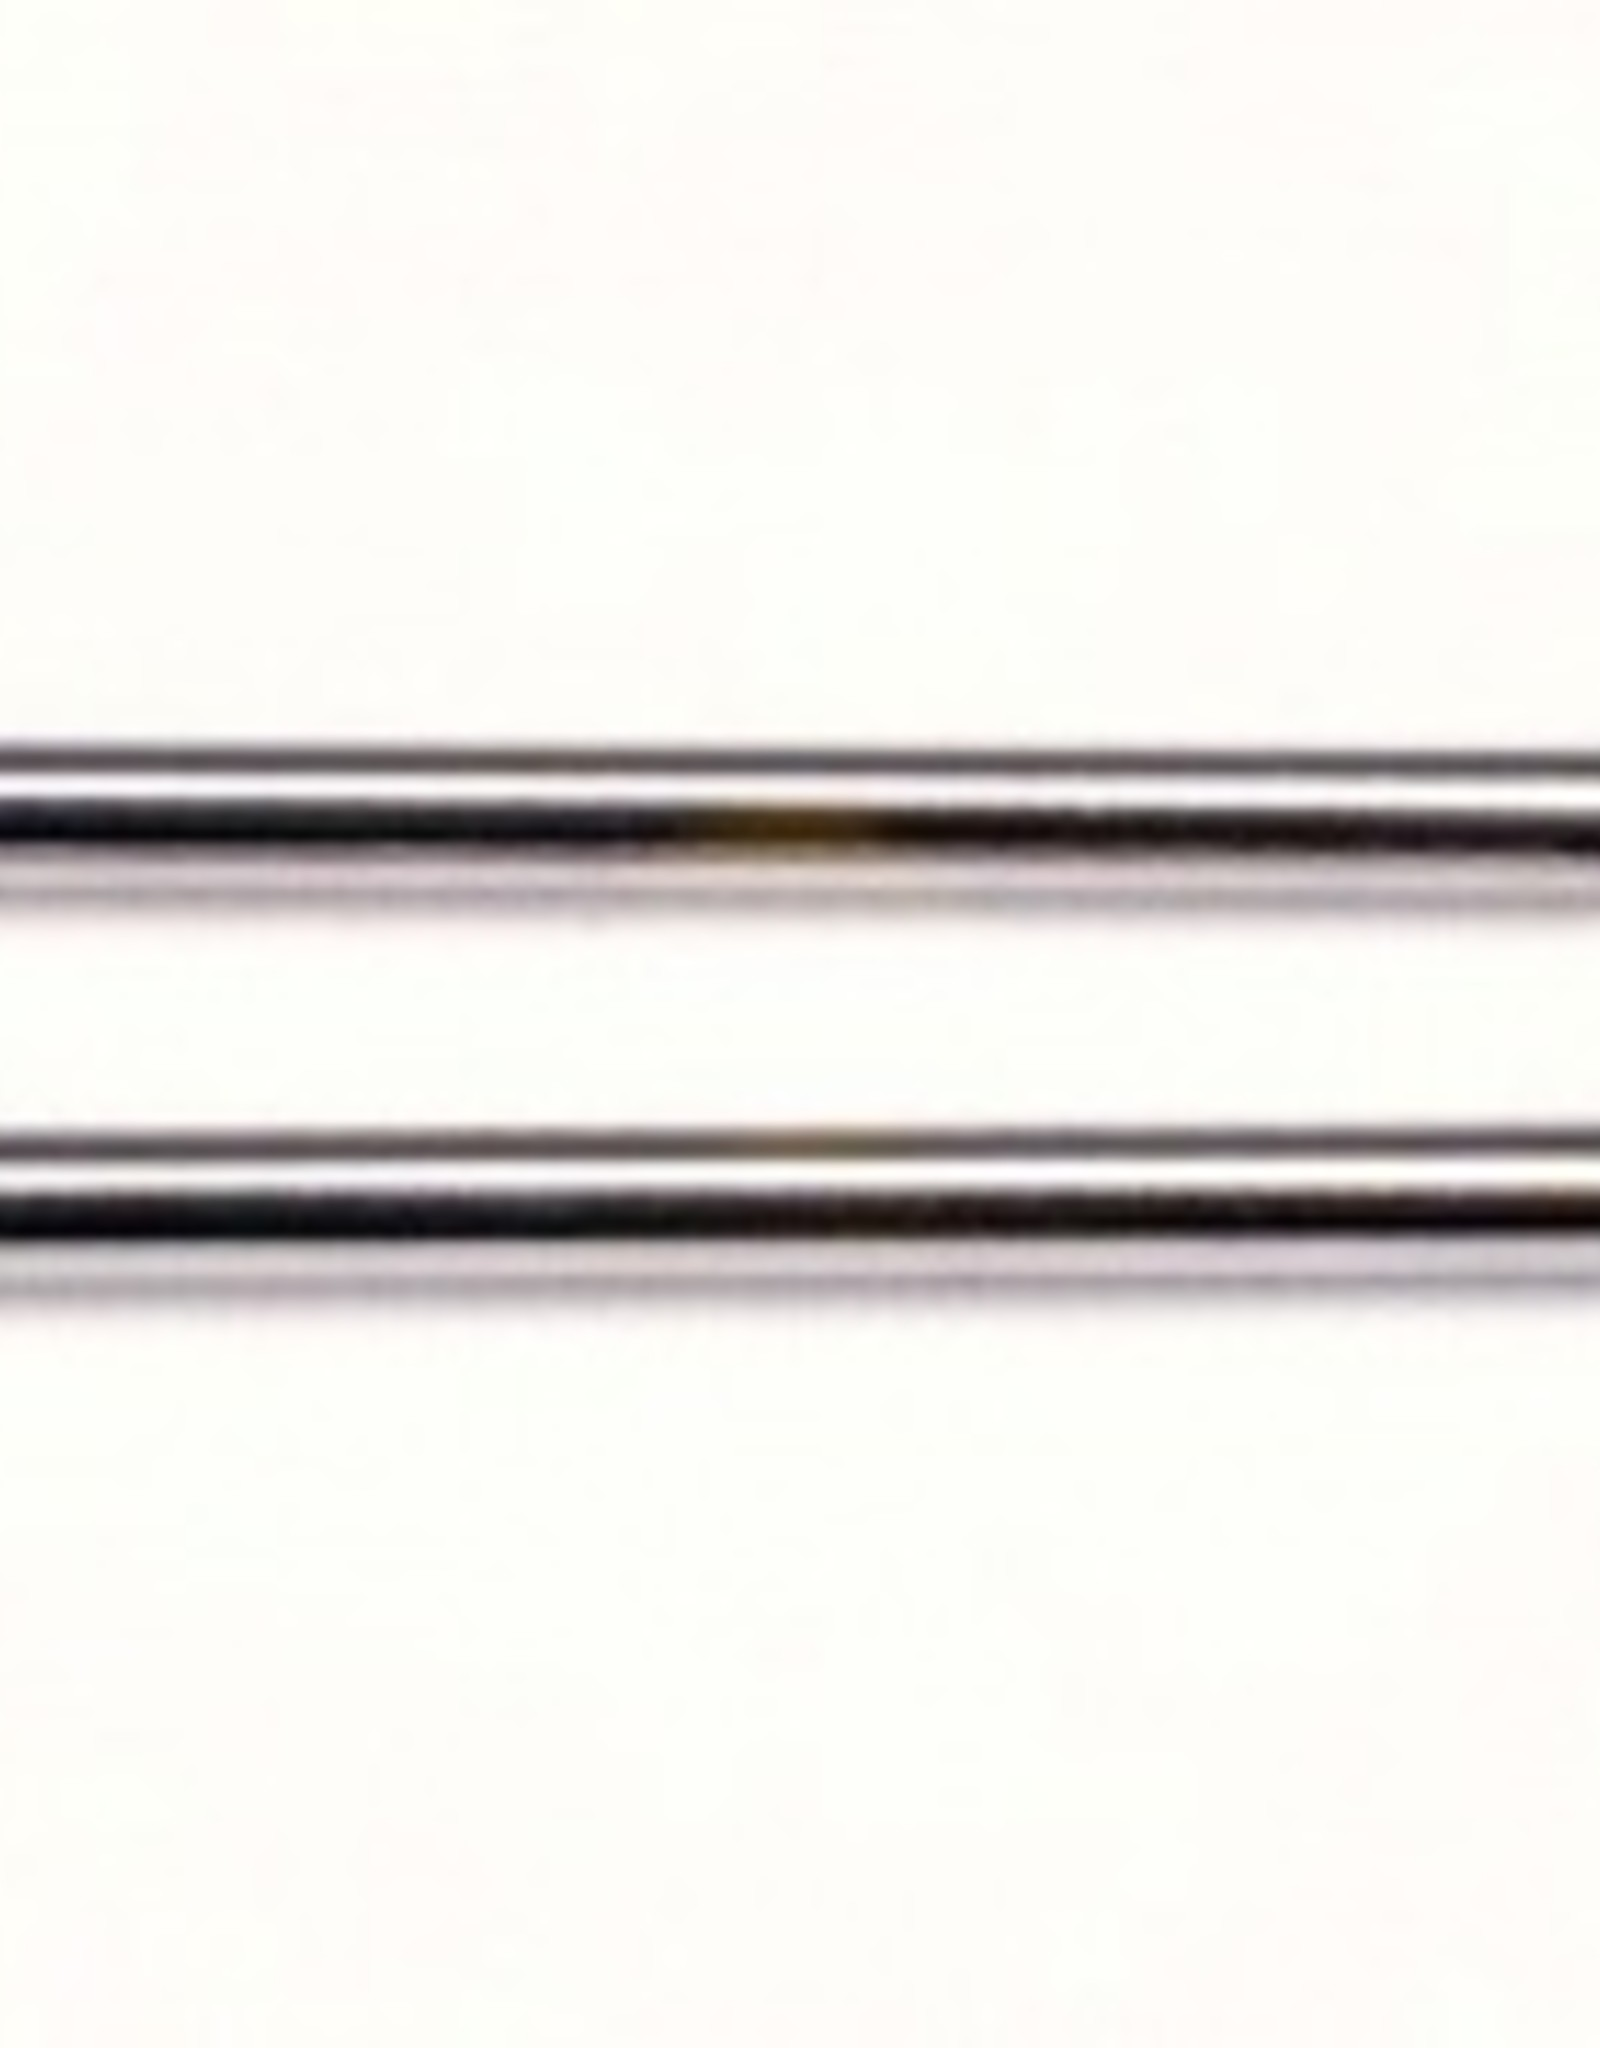 Traxxas Shock shafts, steel, chrome finish (long) (2)